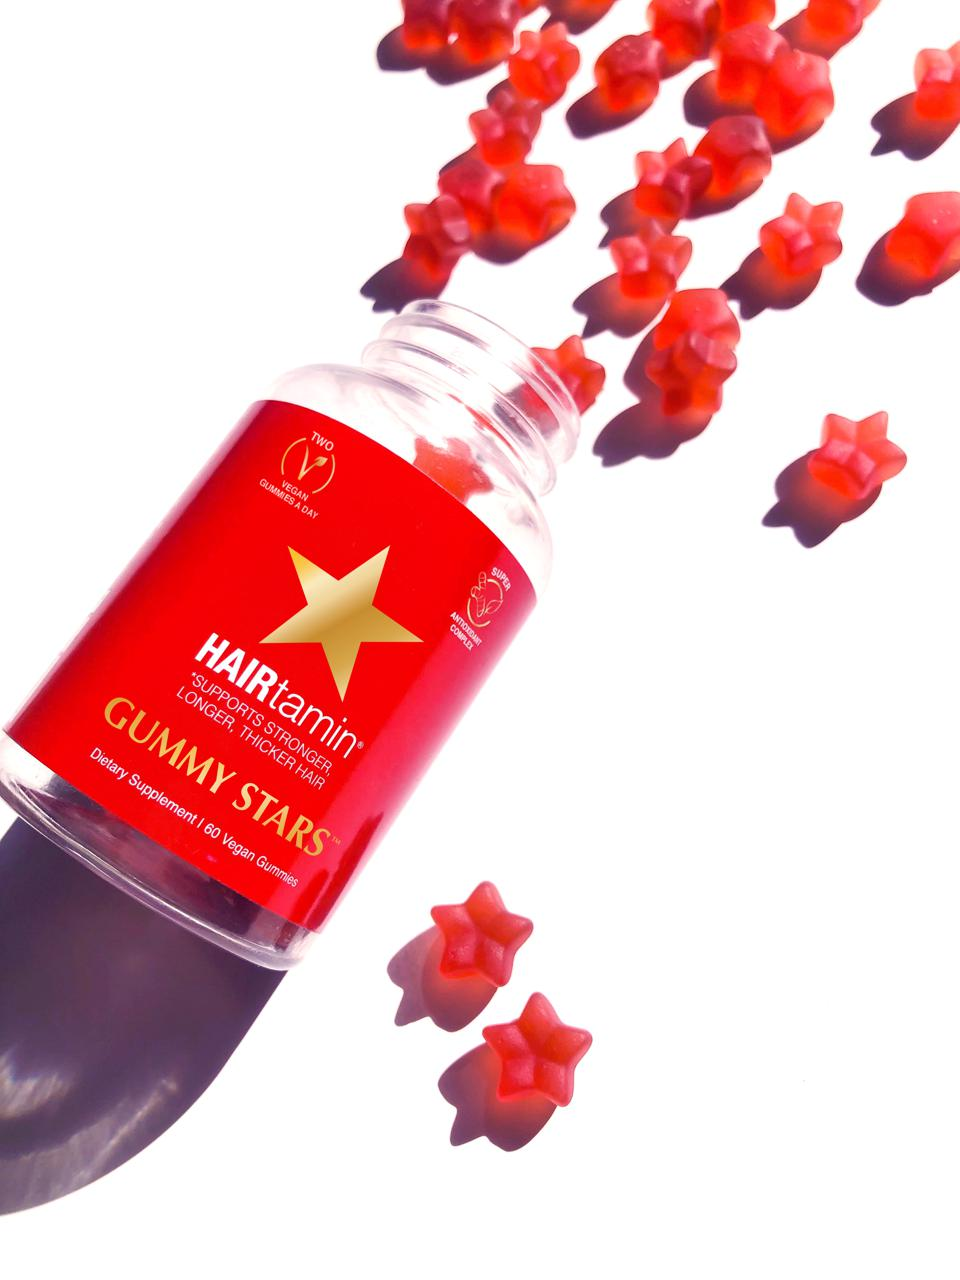 Hairtamin Gummy Stars helps to boost hair growth and strength